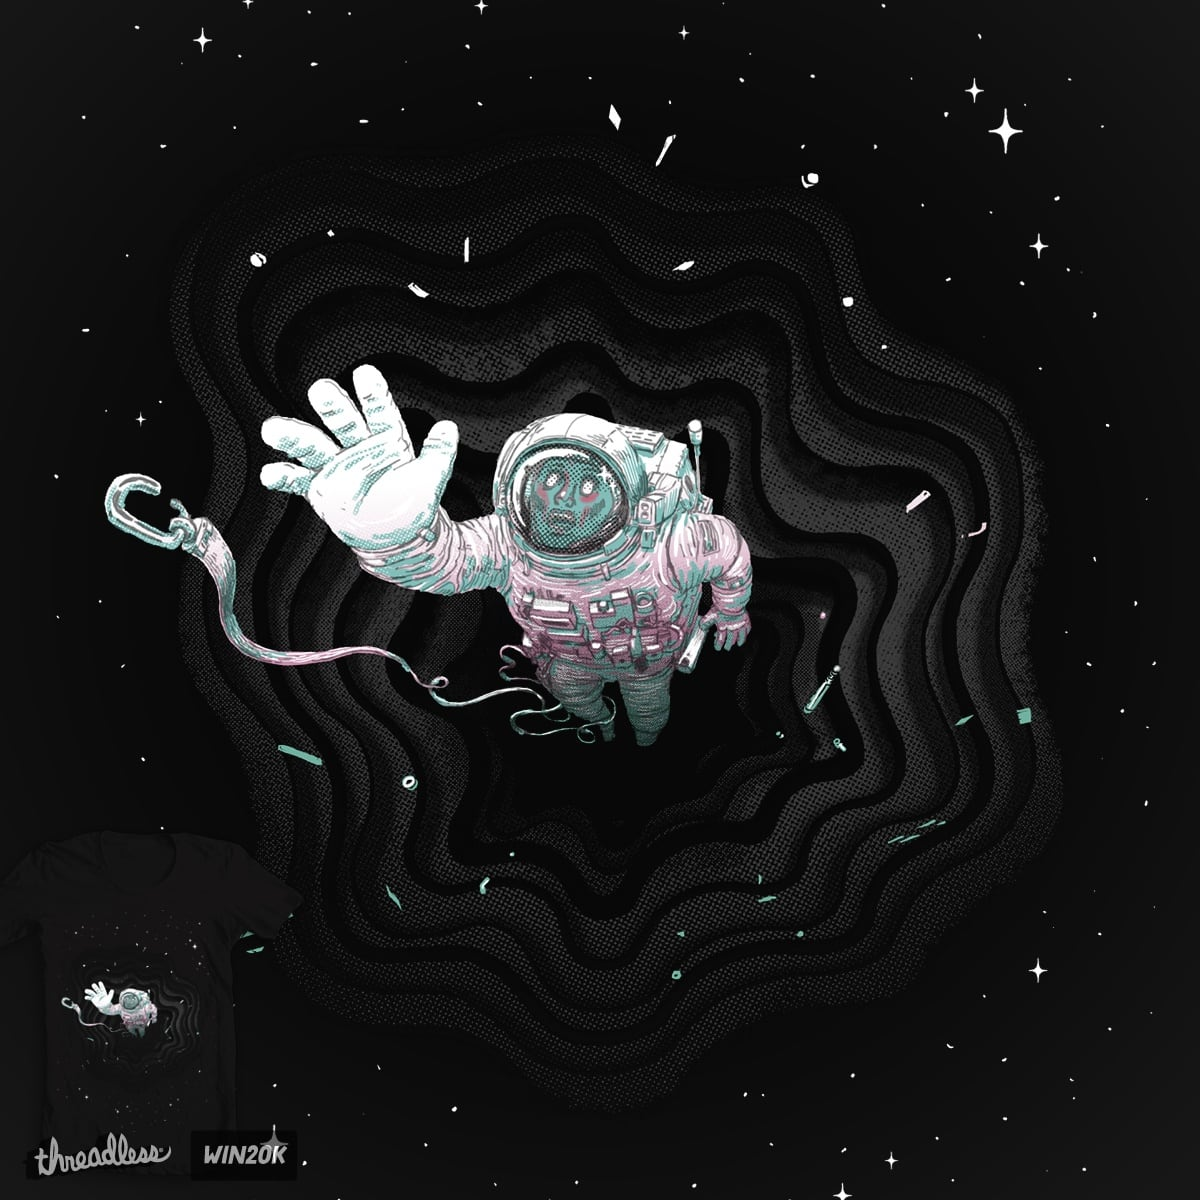 Black hole by c-royal on Threadless